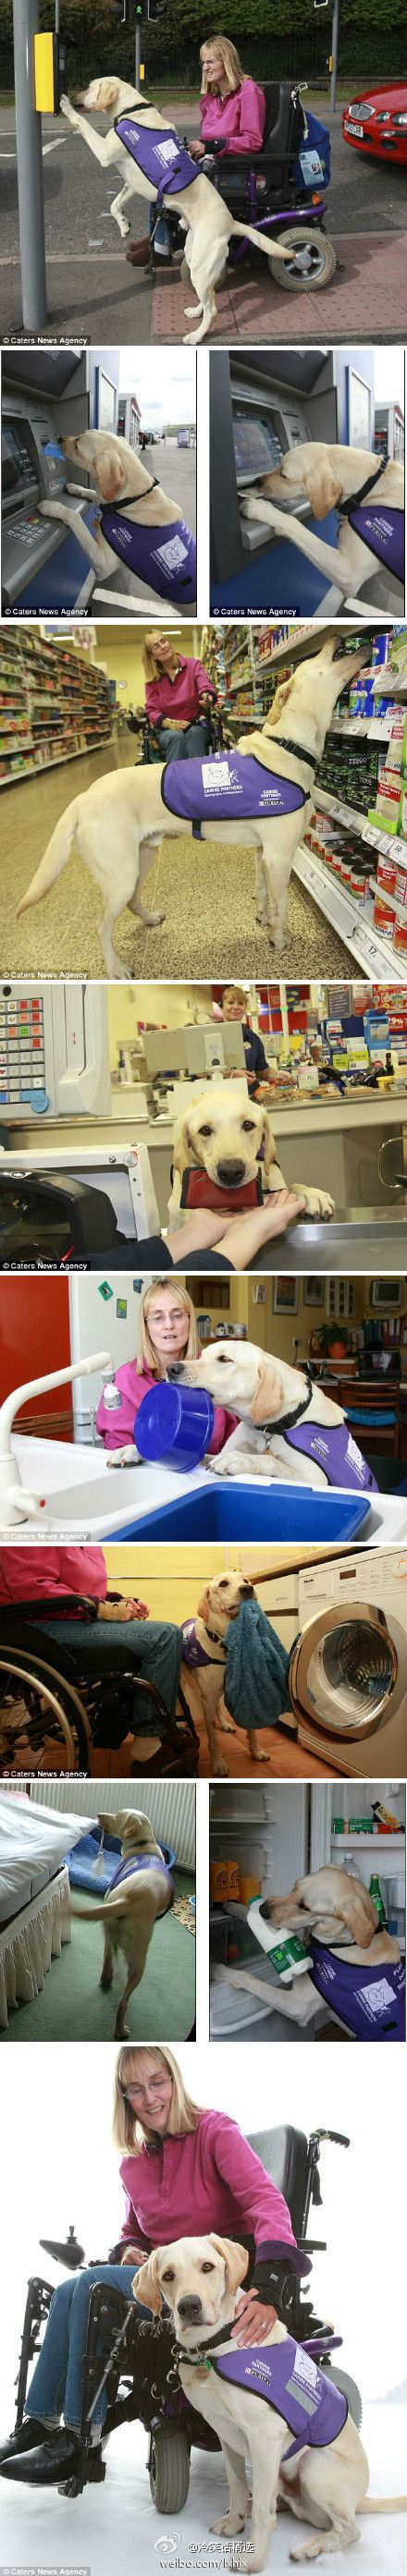 Heartwarming... the many ways a service dog helps his owner. This dog is amazing!